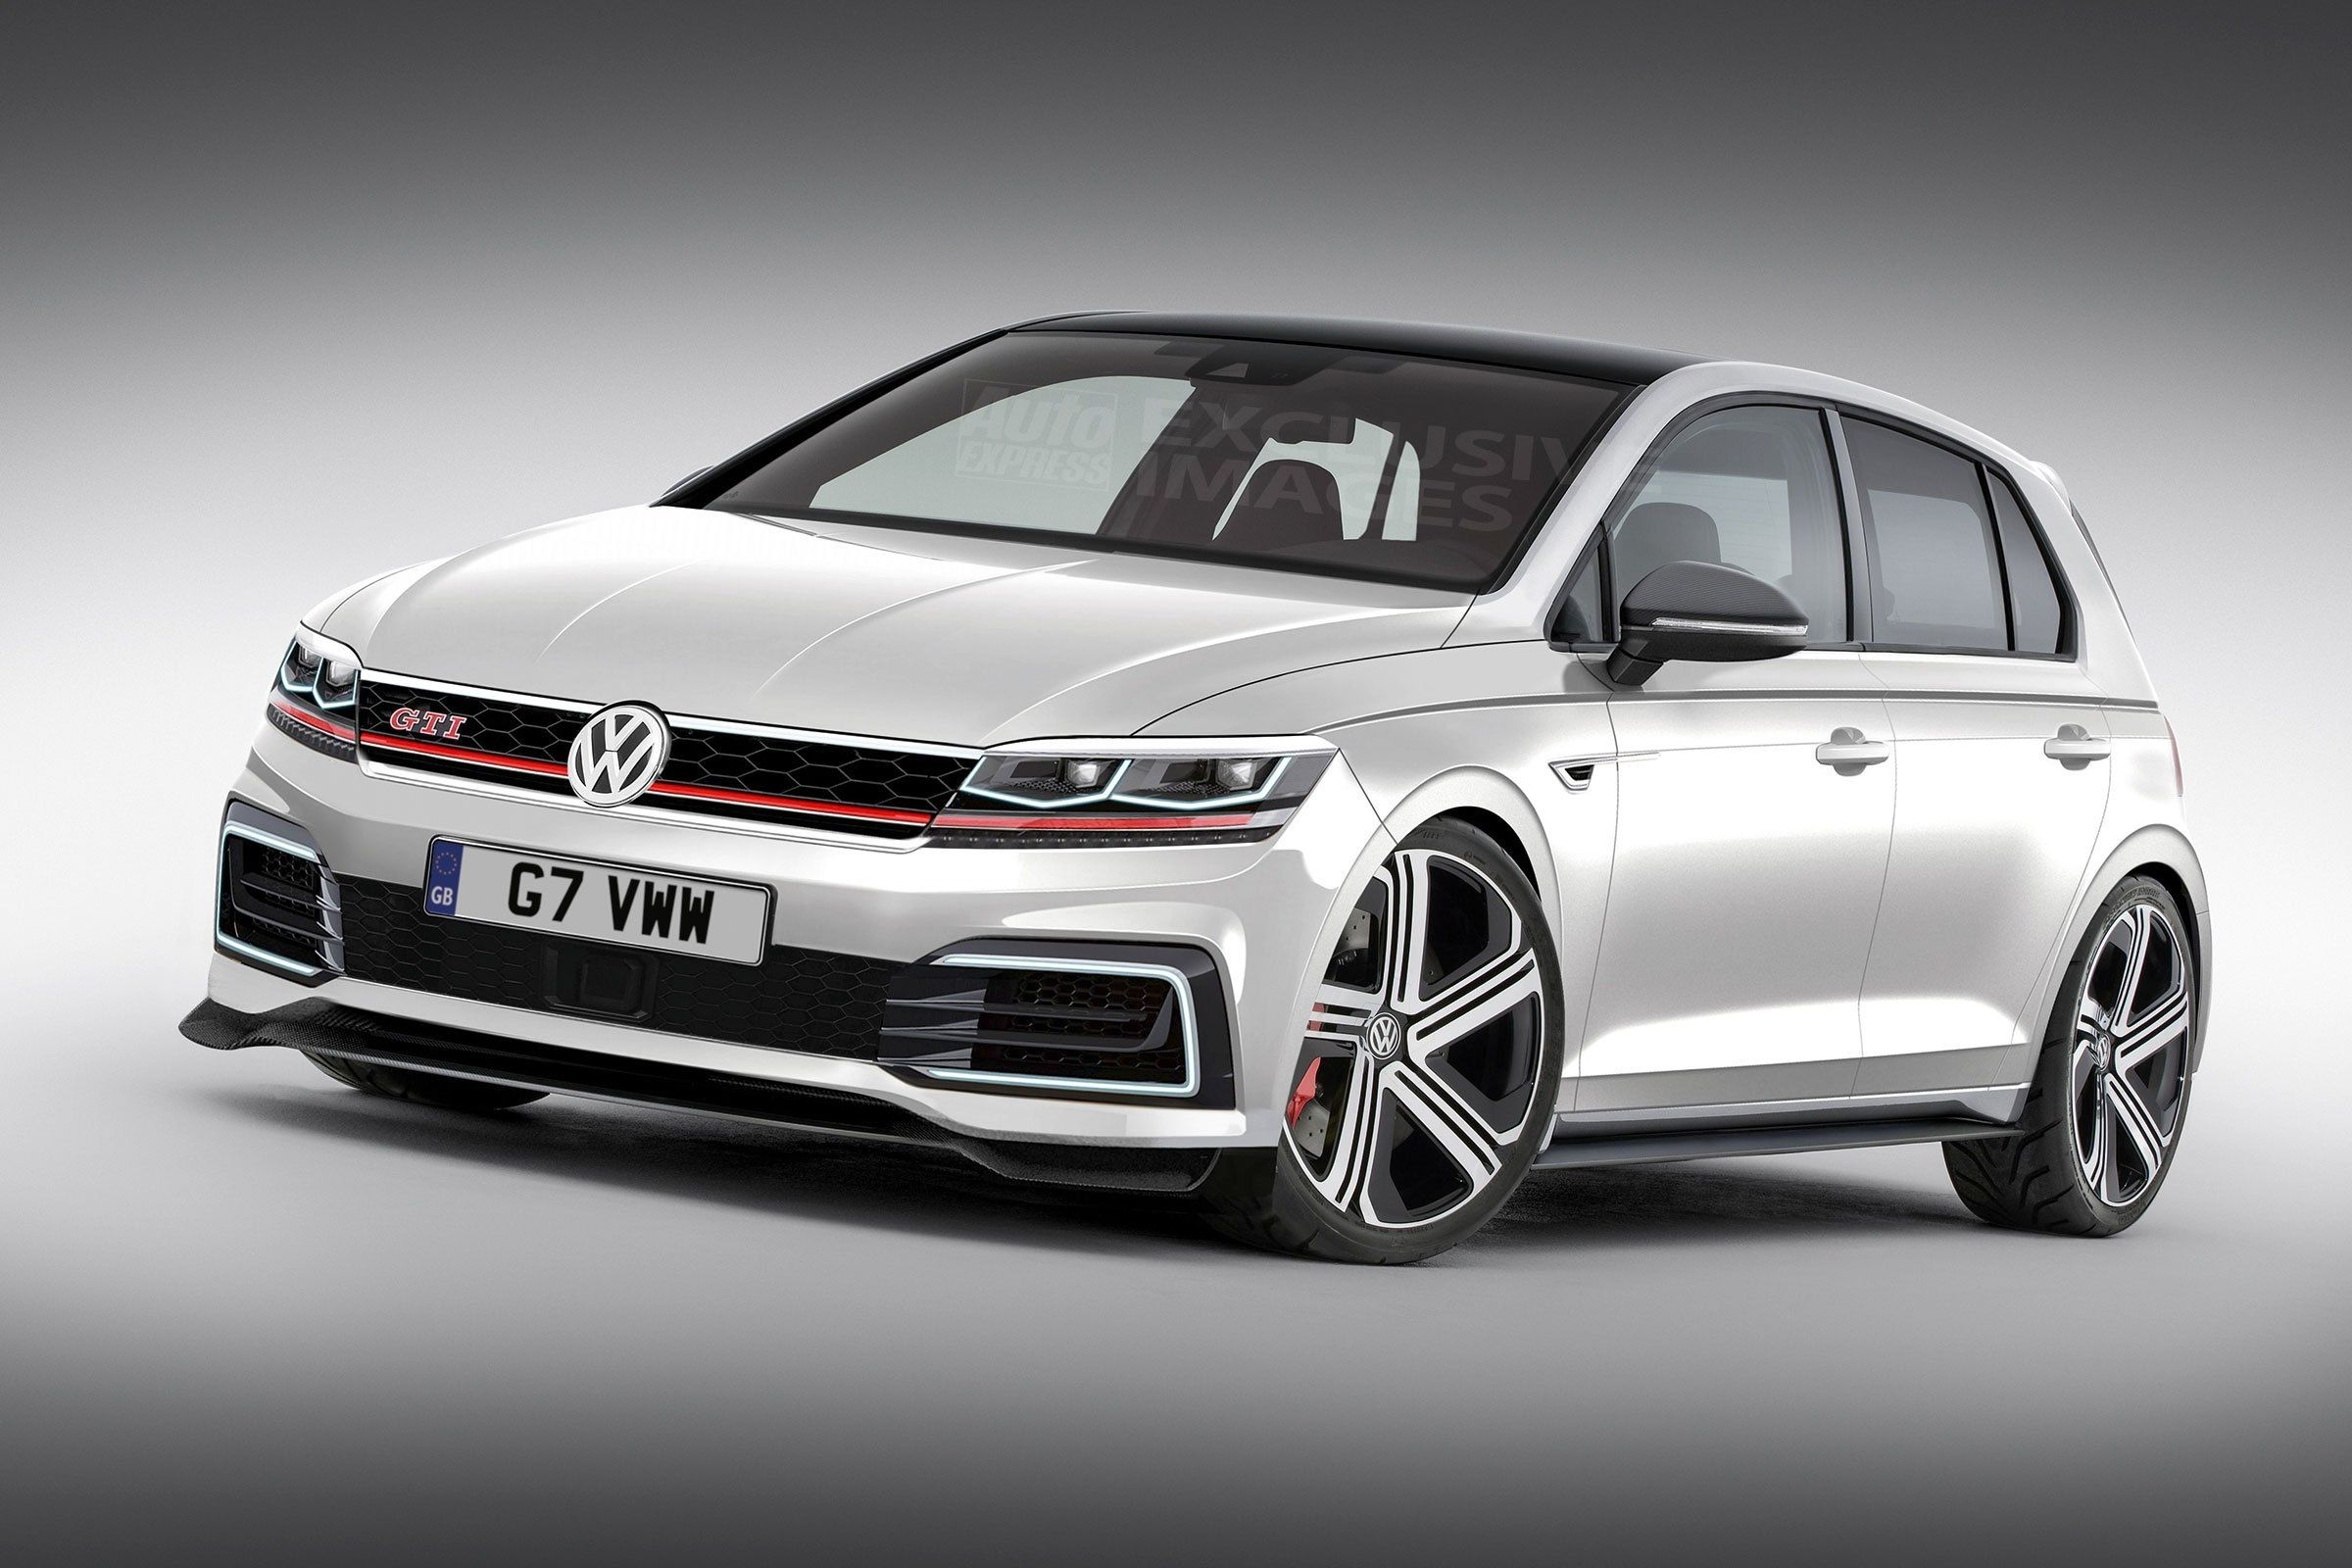 2019 Vw Golf R Usa Release Date And Specs In 2020 Volkswagen Golf R Volkswagen Gti Volkswagen Golf Gti